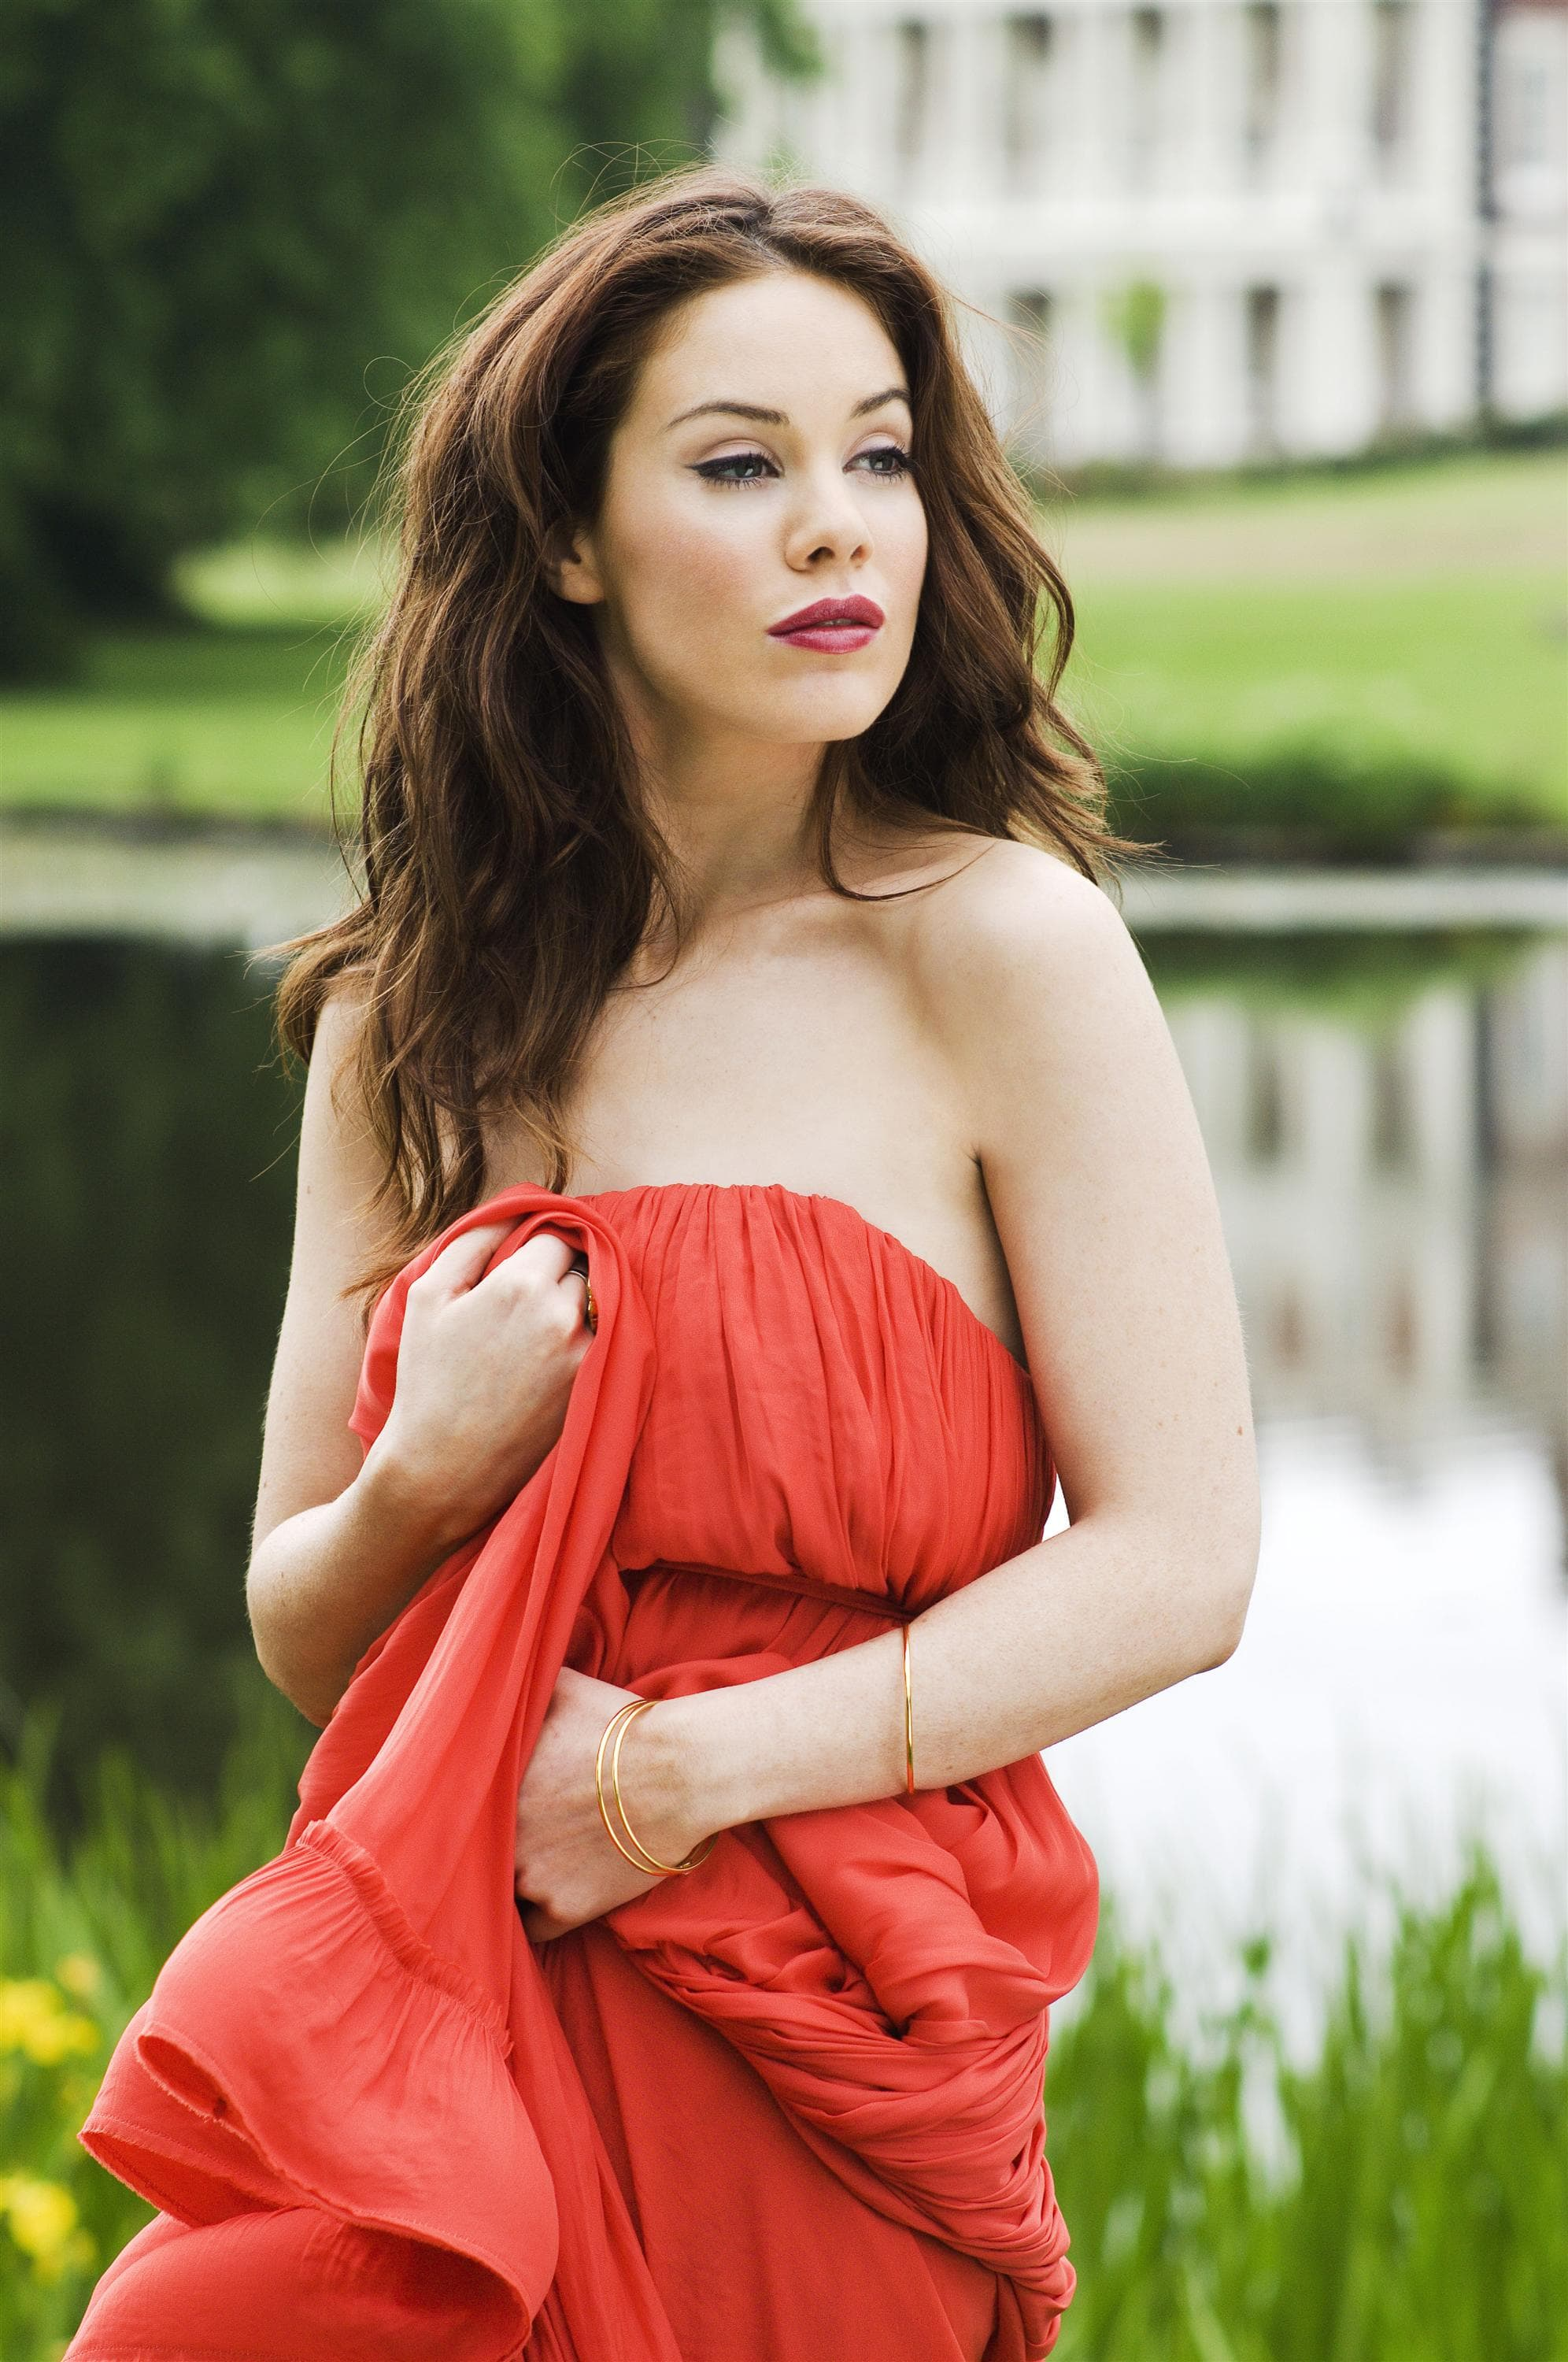 Roxanne Mckee For mobile